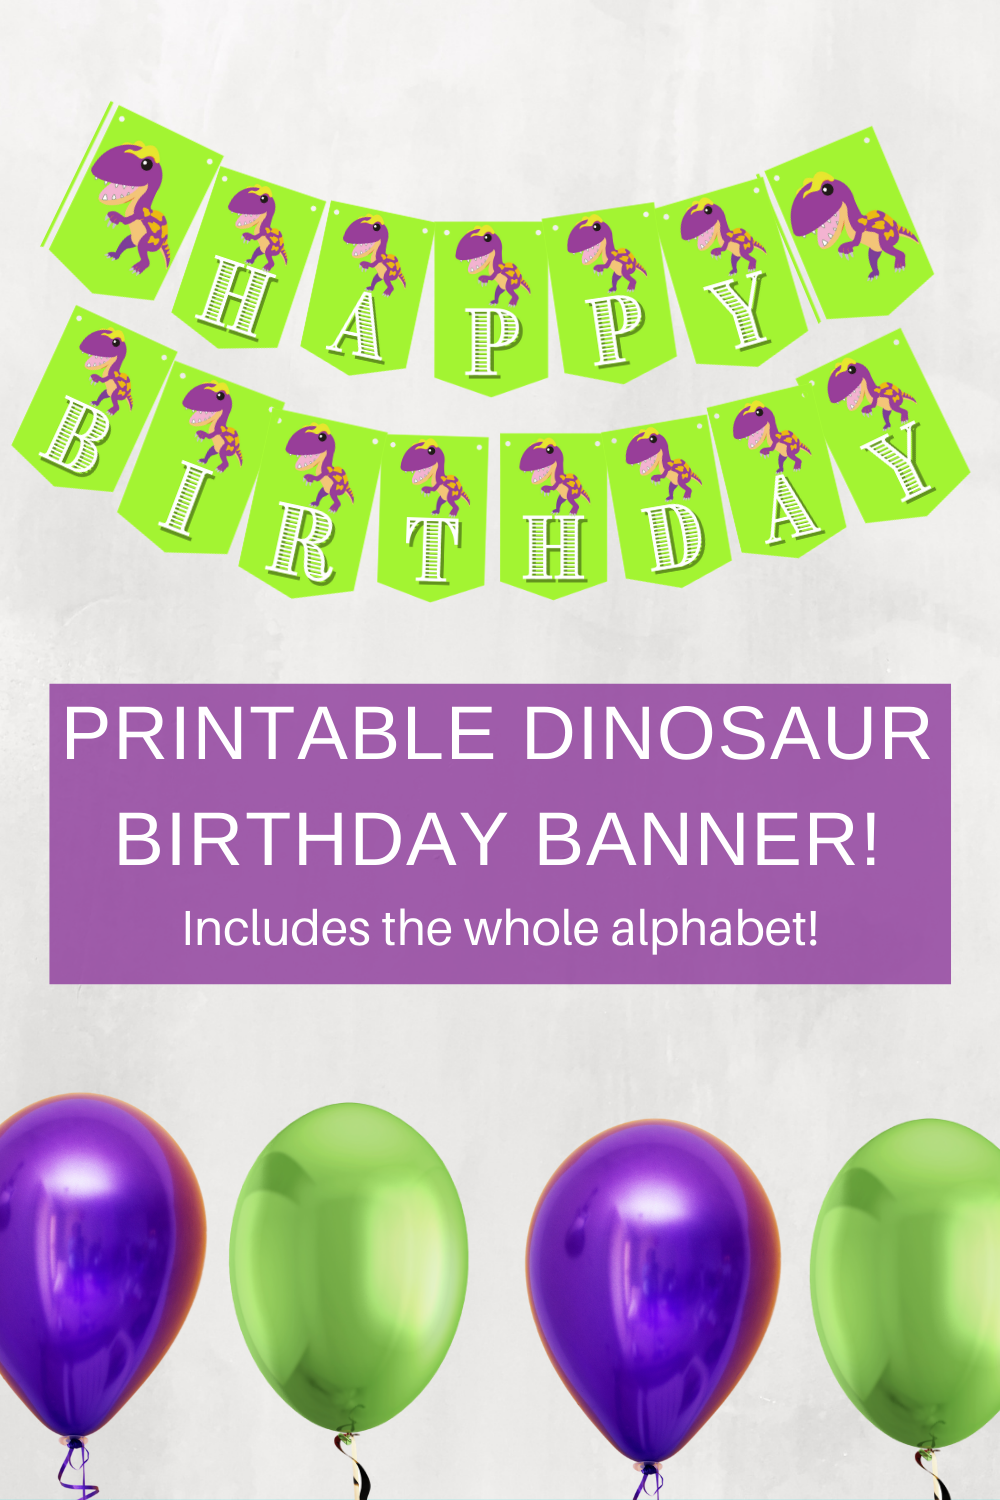 Free birthday party decorations for a dinosaur birthday party